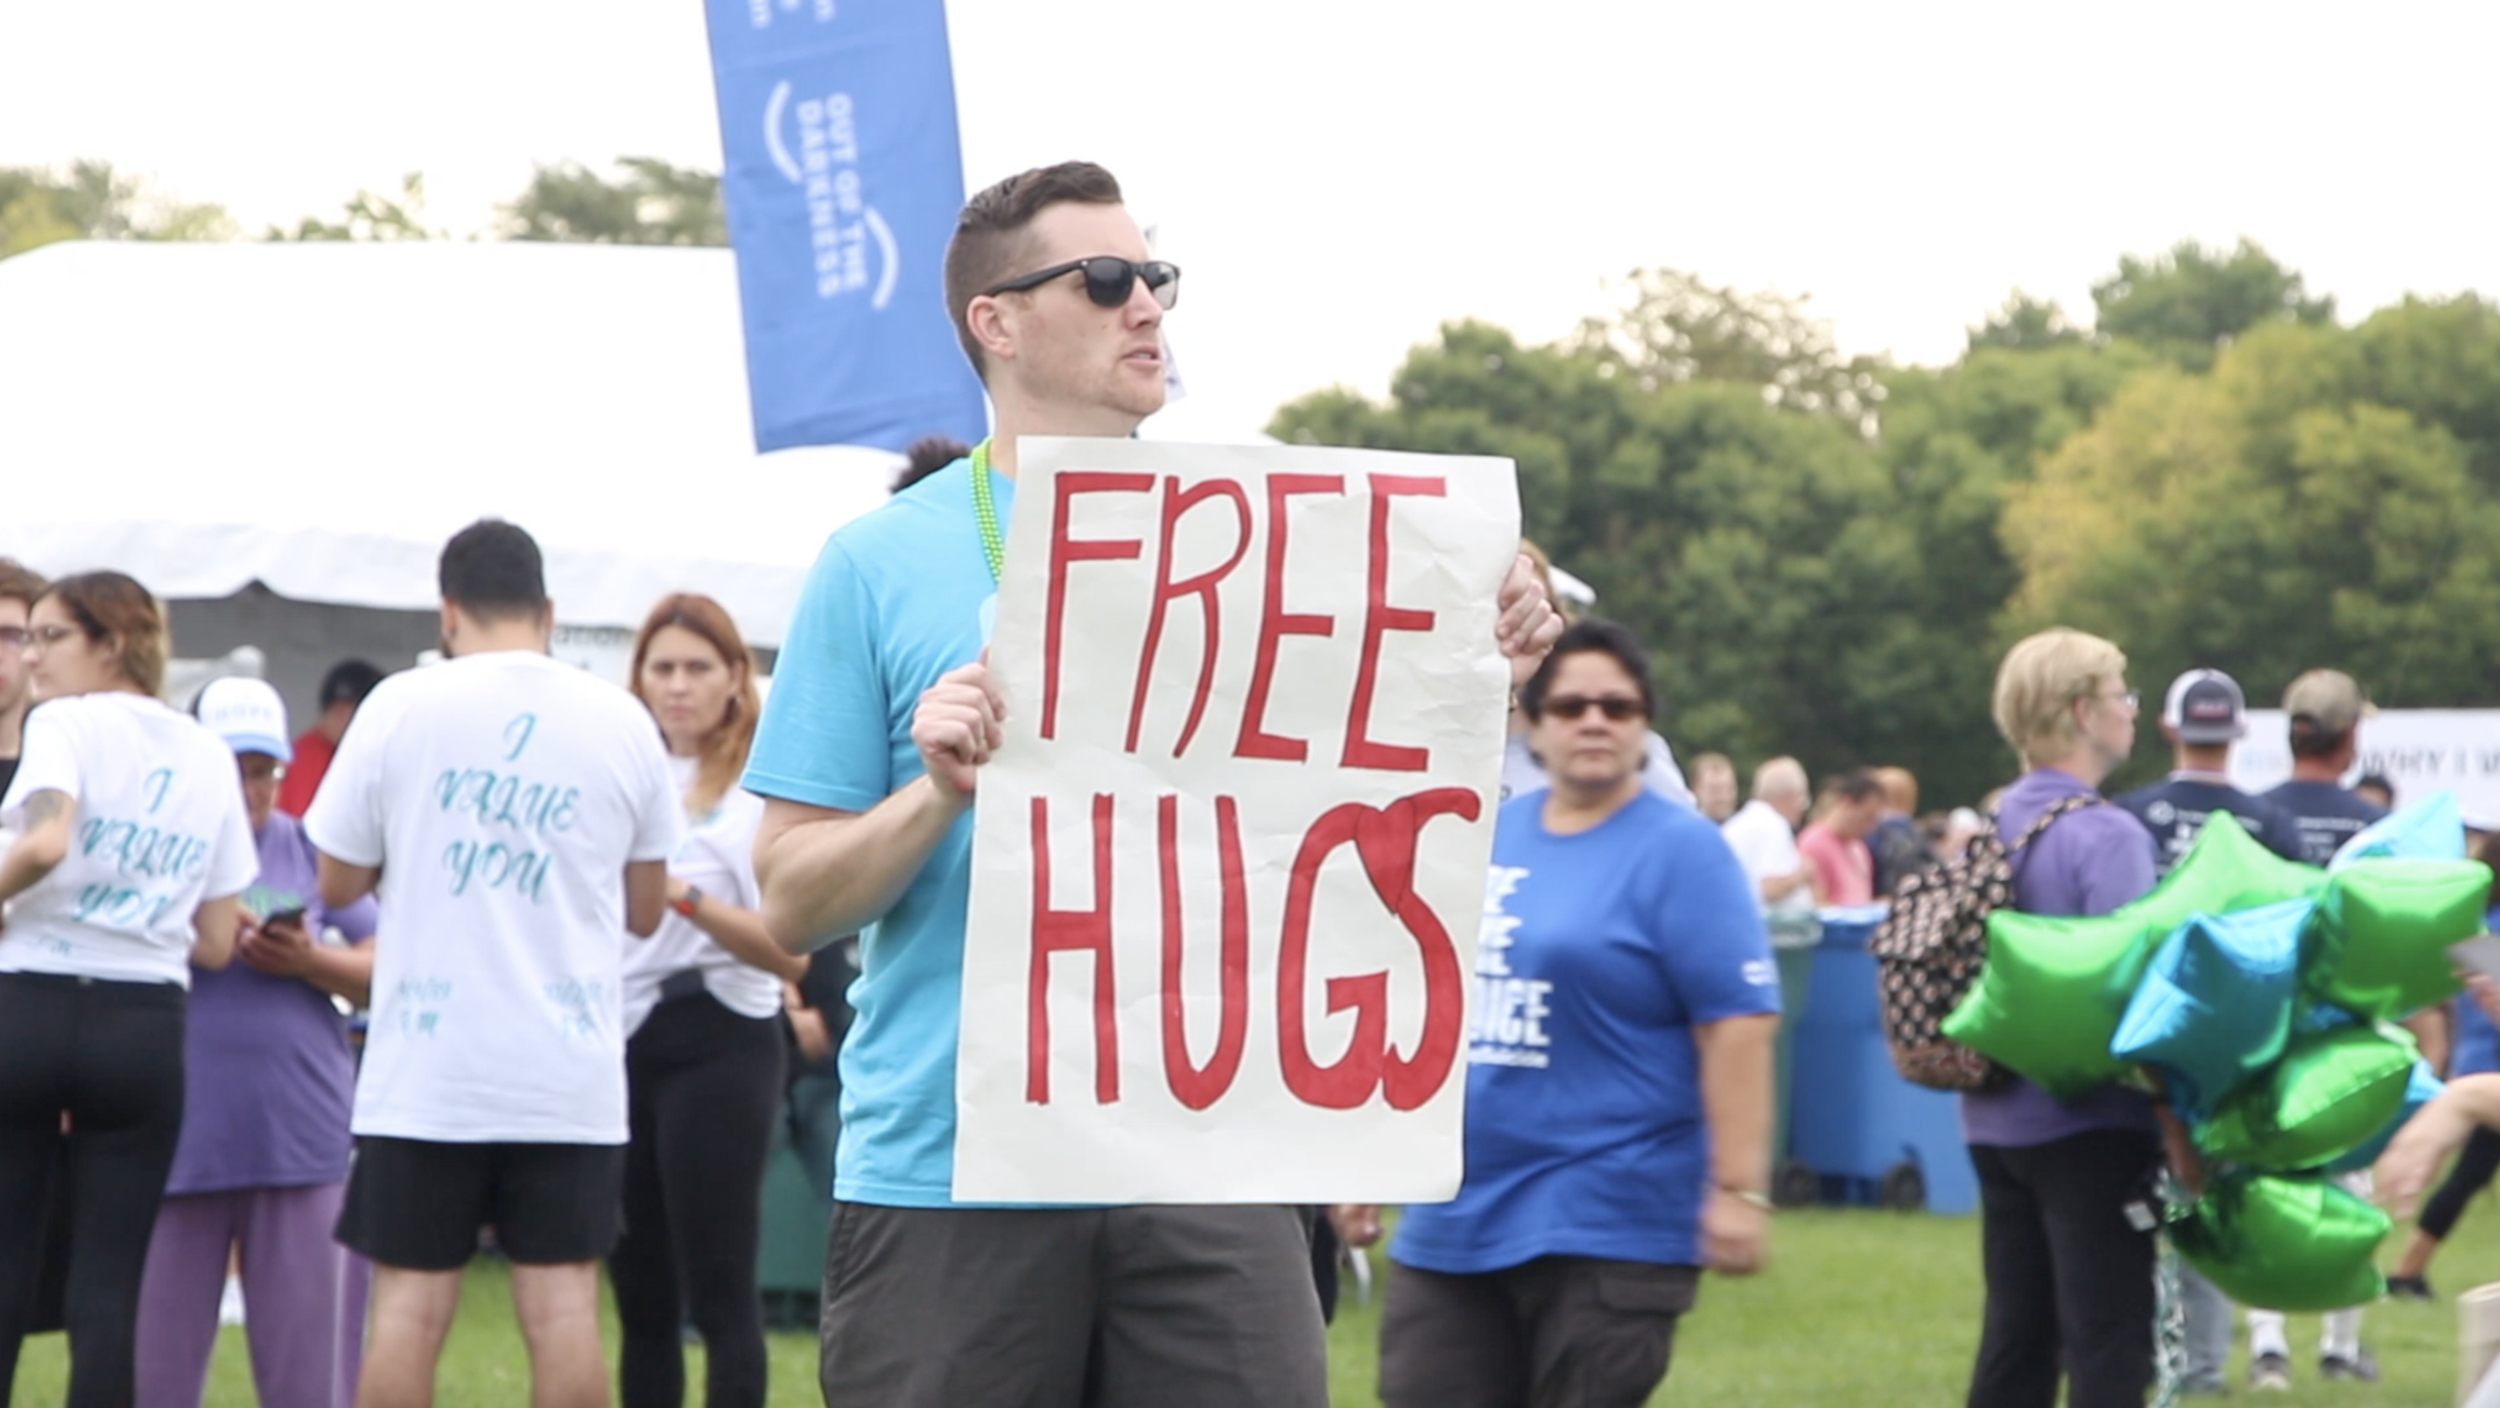 A volunteer offering free hugs at the event.